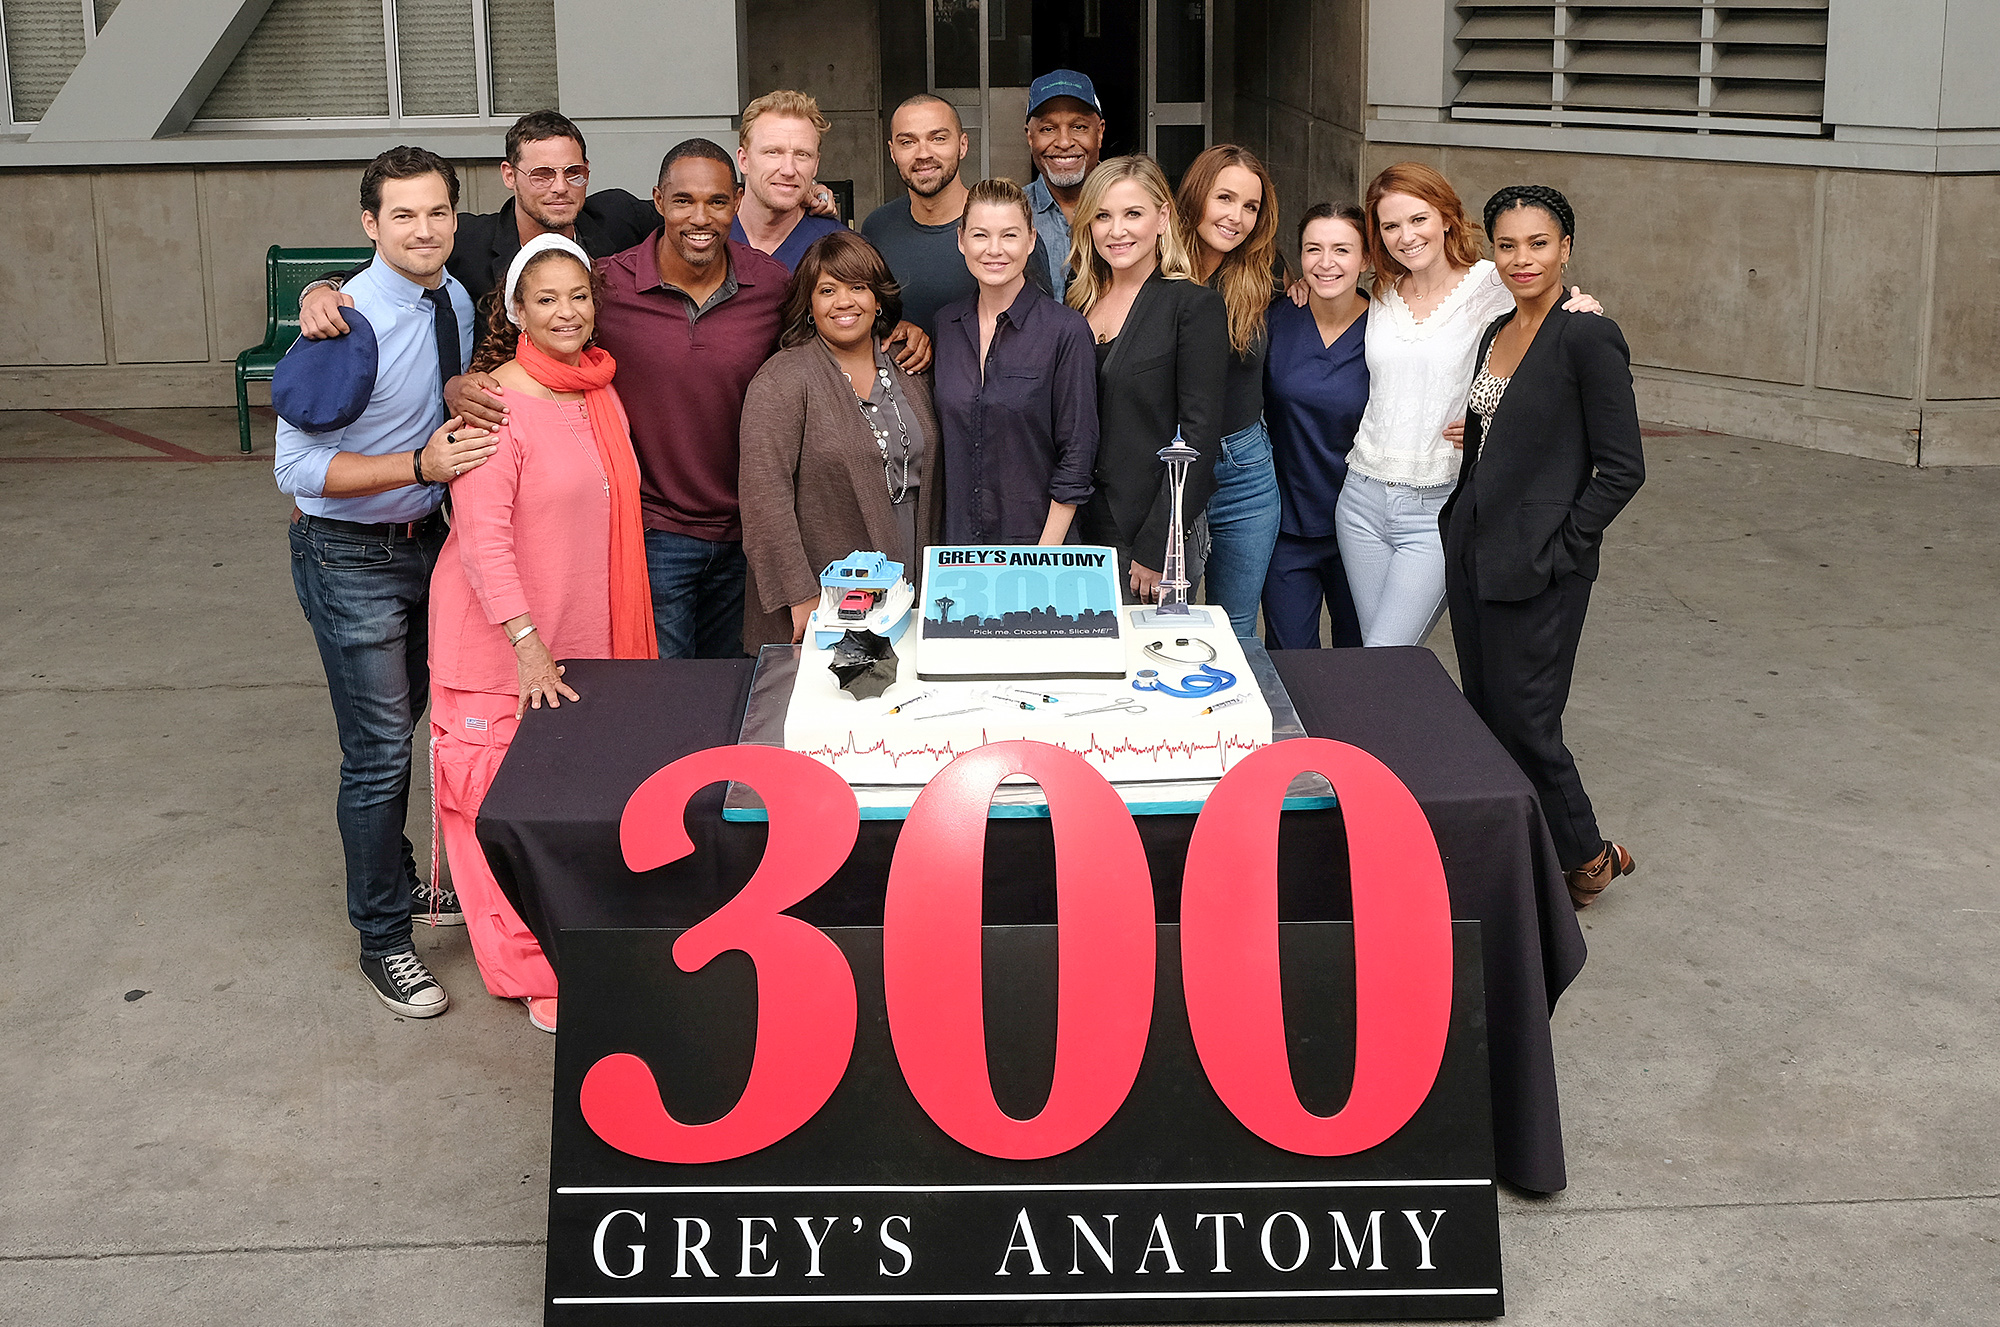 GIACOMO GIANNIOTTI, DEBBIE ALLEN (EXECUTIVE PRODUCER), JUSTIN CHAMBERS, JASON GEORGE, KEVIN MCKIDD, CHANDRA WILSON, JESSE WILLIAMS, ELLEN POMPEO, JAMES PICKENS JR., JESSICA CAPSHAW, CAMILLA LUDDINGTON, CATERINA SCORSONE, SARAH DREW, KELLY MCCREARY